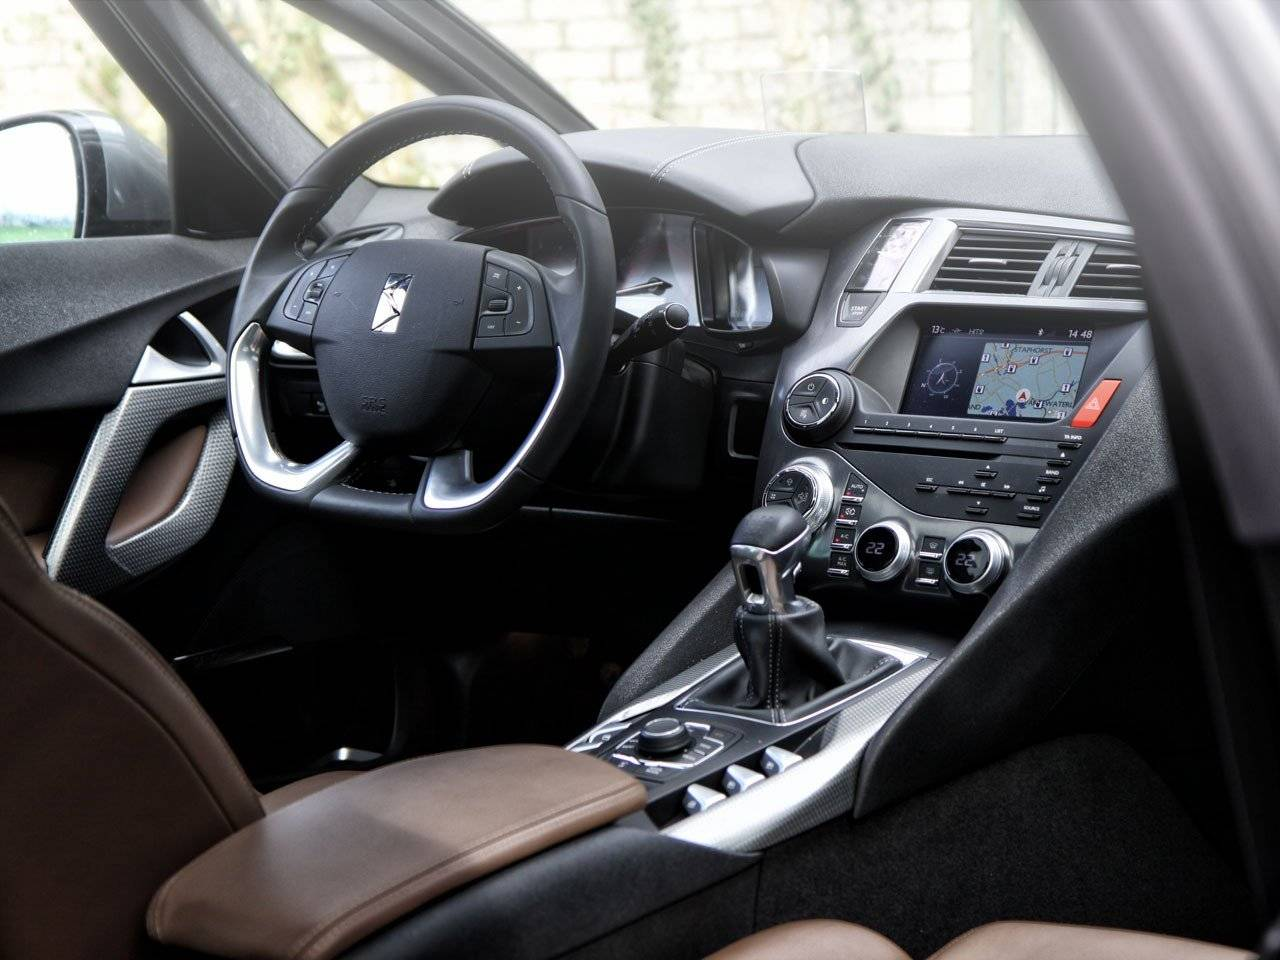 Test citro n ds5 autotests for Auto interieur bekleden prijs